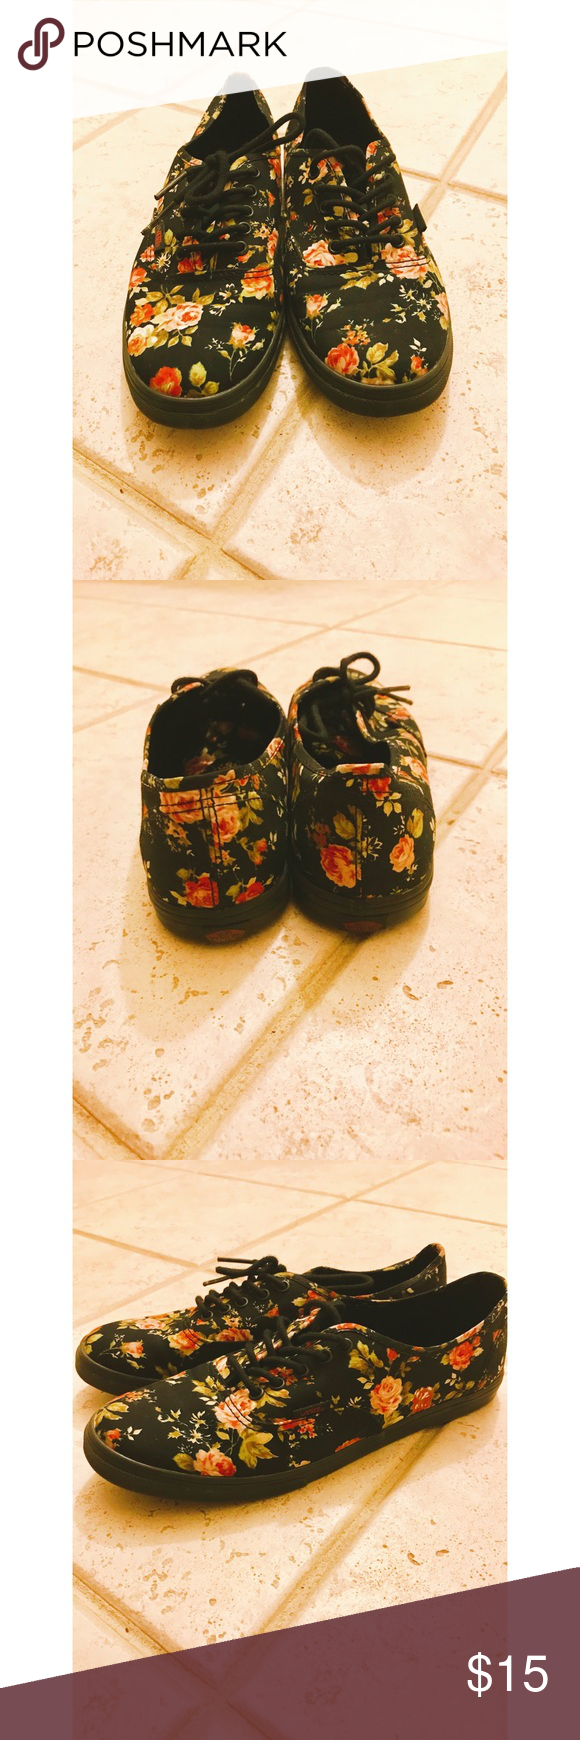 VANS Floral Canvas Sneaker Size 9.5 Brand: Vans. Color: Black Floral. Size: 9.5 Women's/ 8 Men's. Condition: Used. Material: Canvas, easy to clean. Normal wear dents due to walking. Item is true to size. Item does not come with box and will be cleaned best to ability. Any questions please ask. Vans Shoes Sneakers